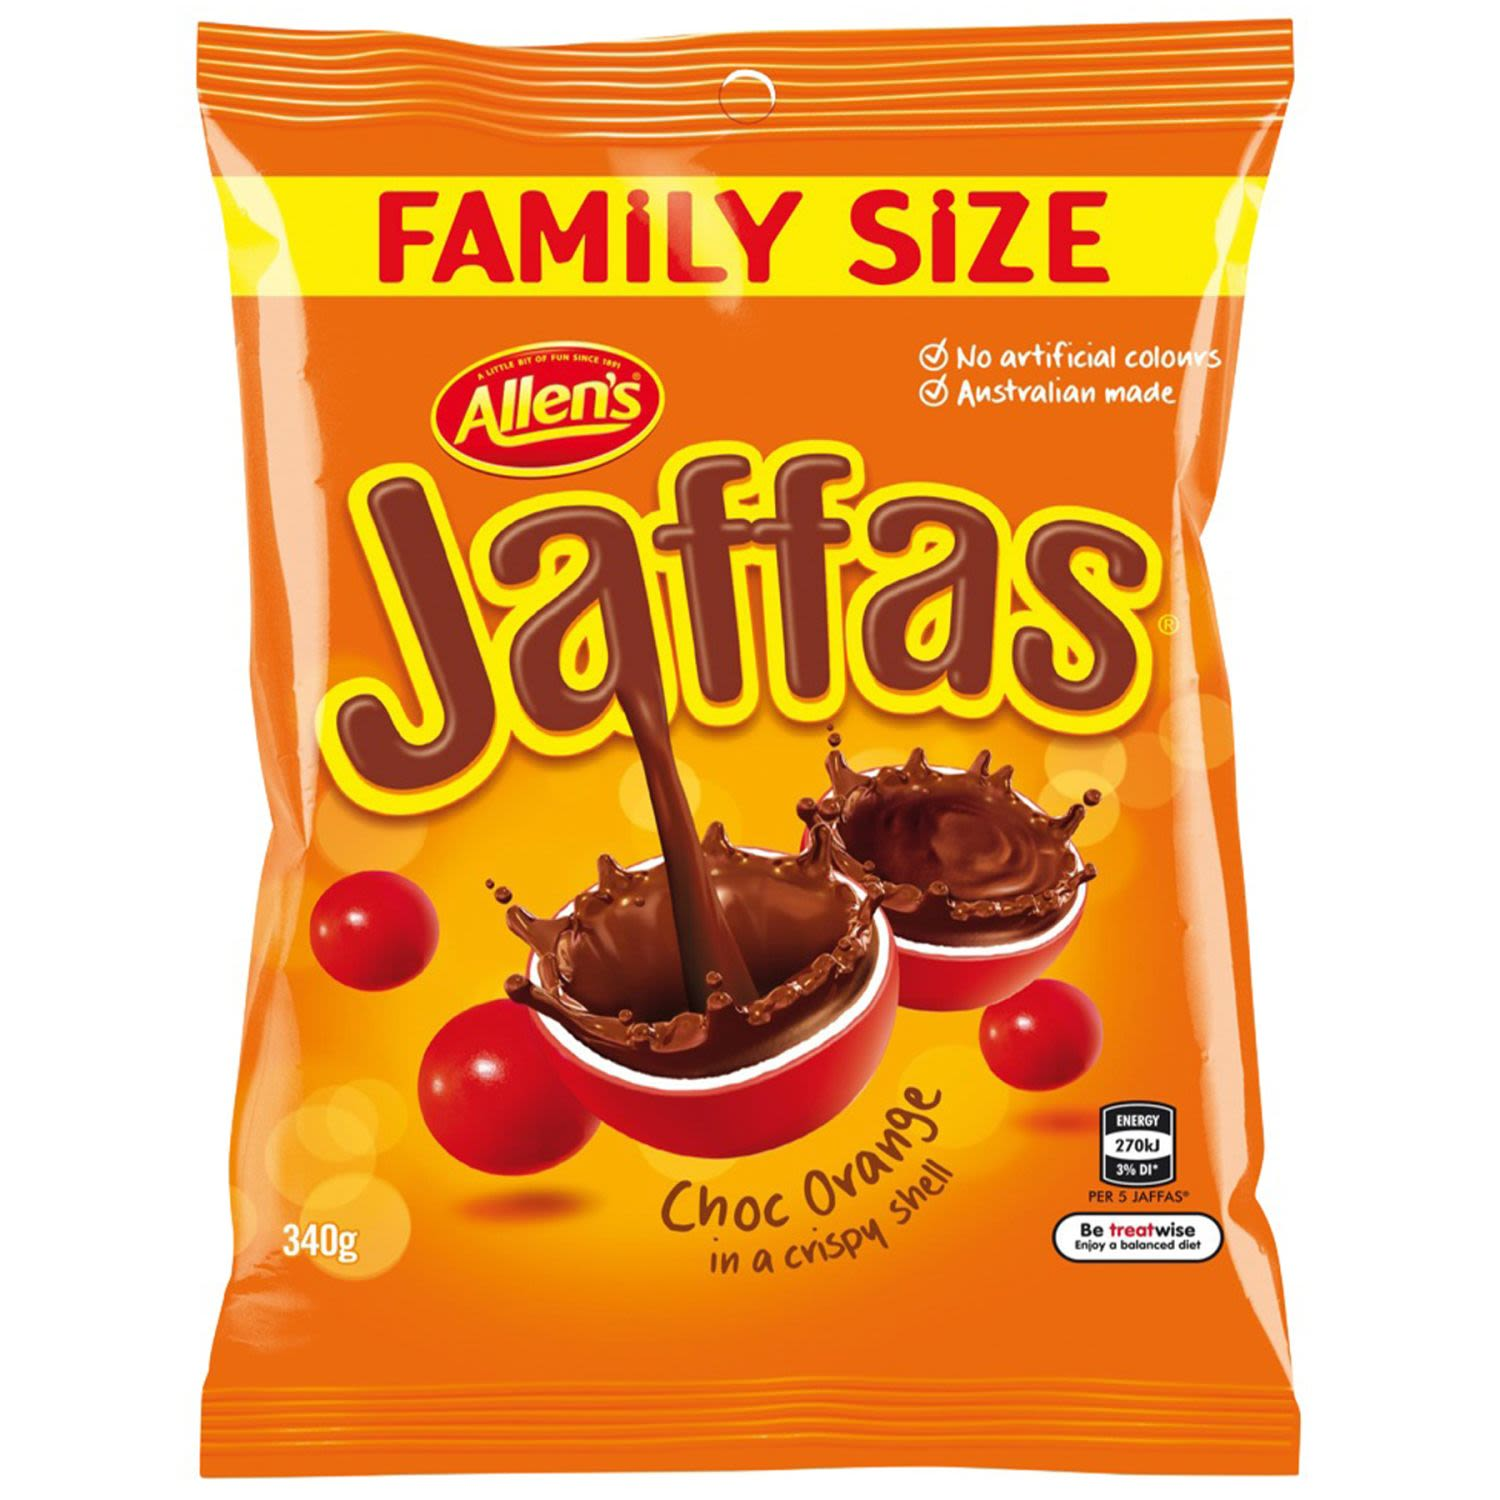 ALLEN'S Jaffas are chocolate balls covered in an orange flavoured shell. Bite into the crispy shell and let the choc orange flavour melt in your mouth. Contains no artificial colours. ALLEN'S makes smiles®